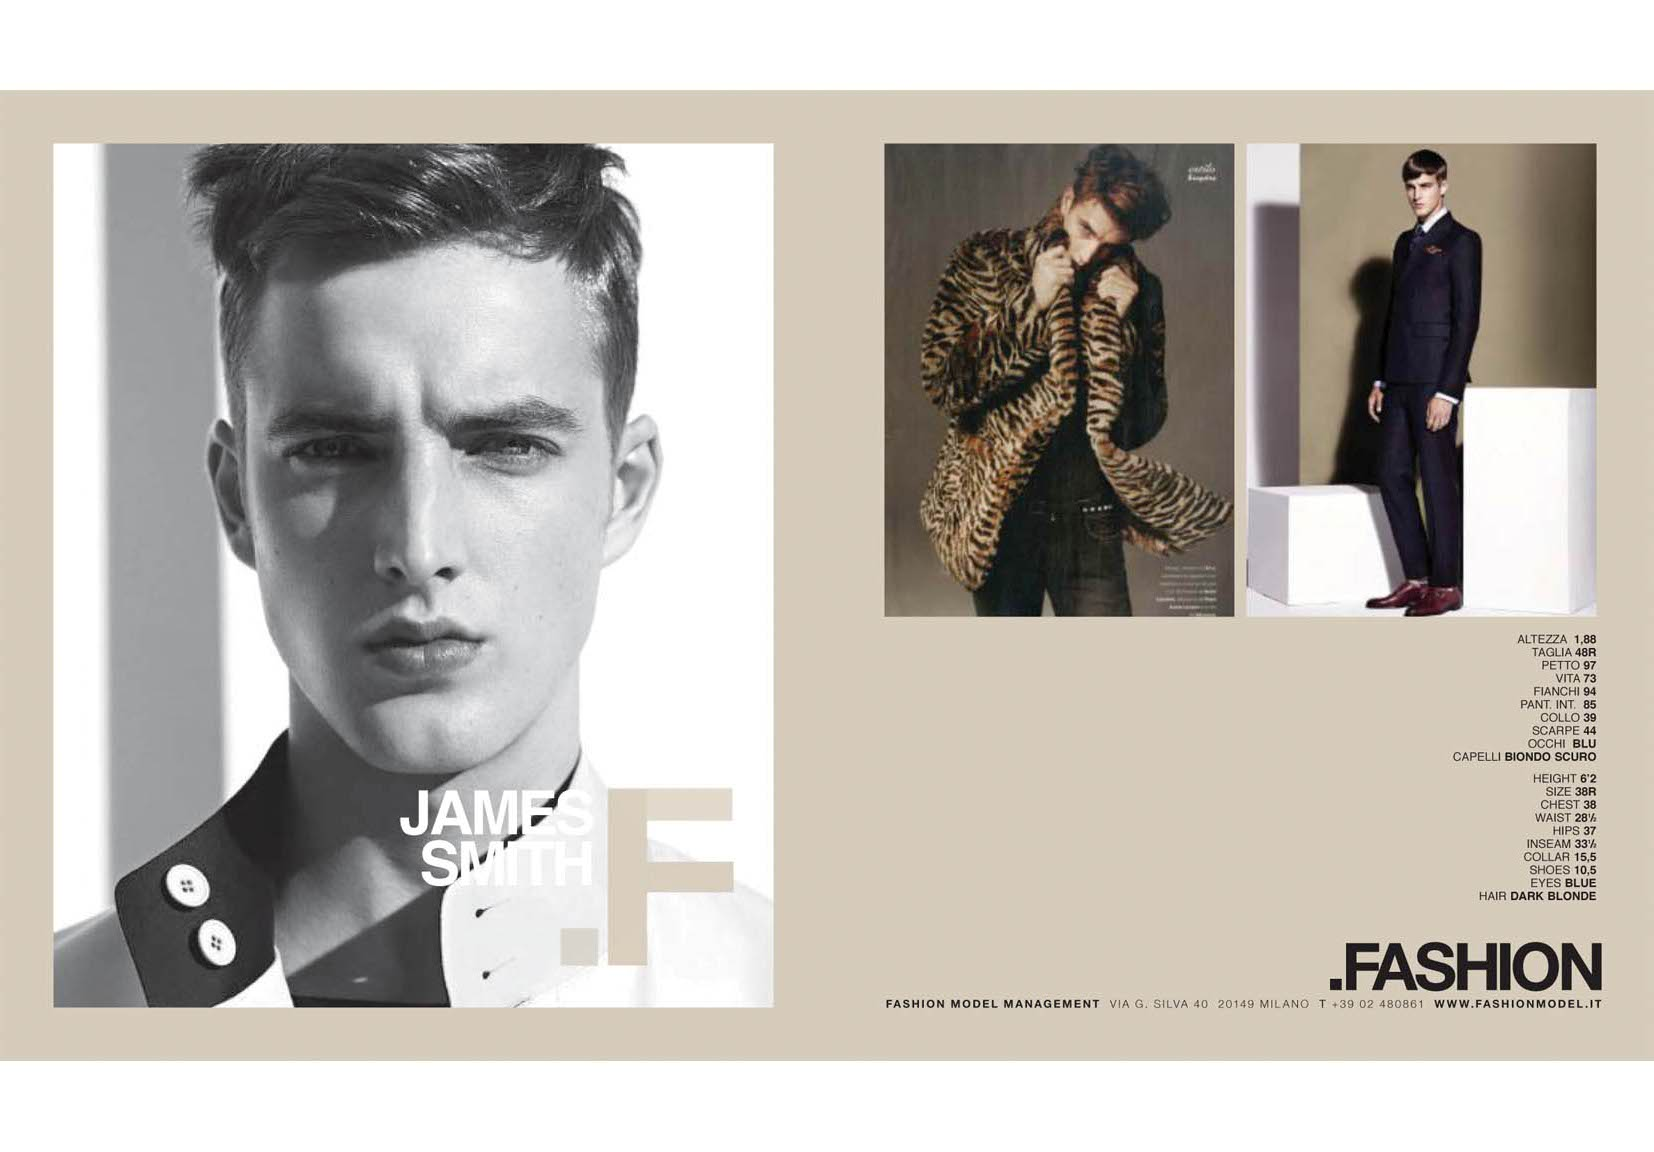 Fashion Milano Spring/Summer 2015 Show Package